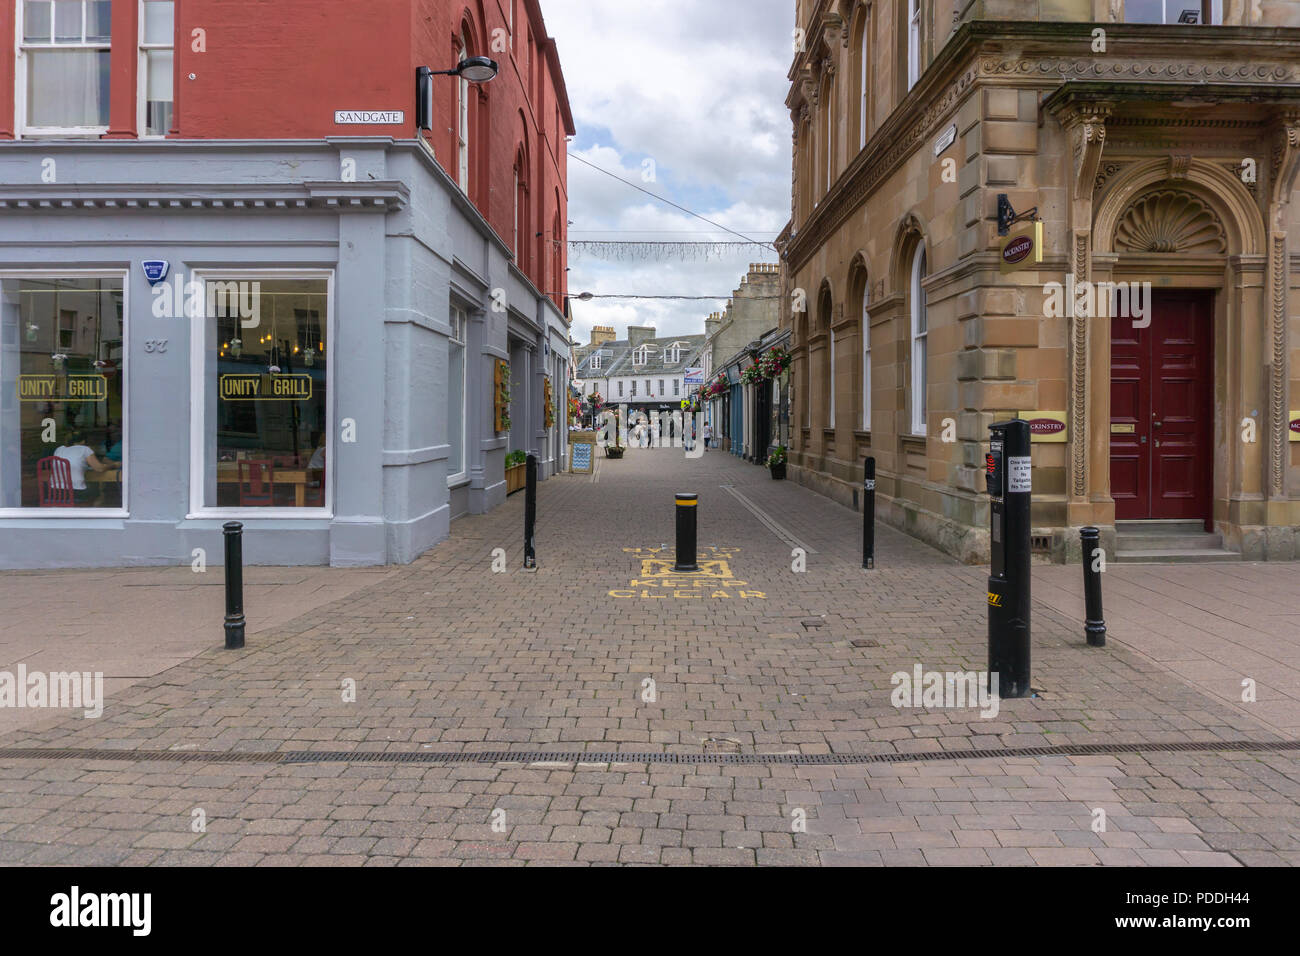 Ayr, Scotland, UK - August 05, 2018: Sandgate in Ayr looking into New market Street with many empty shops and business premises in a town with high un - Stock Image